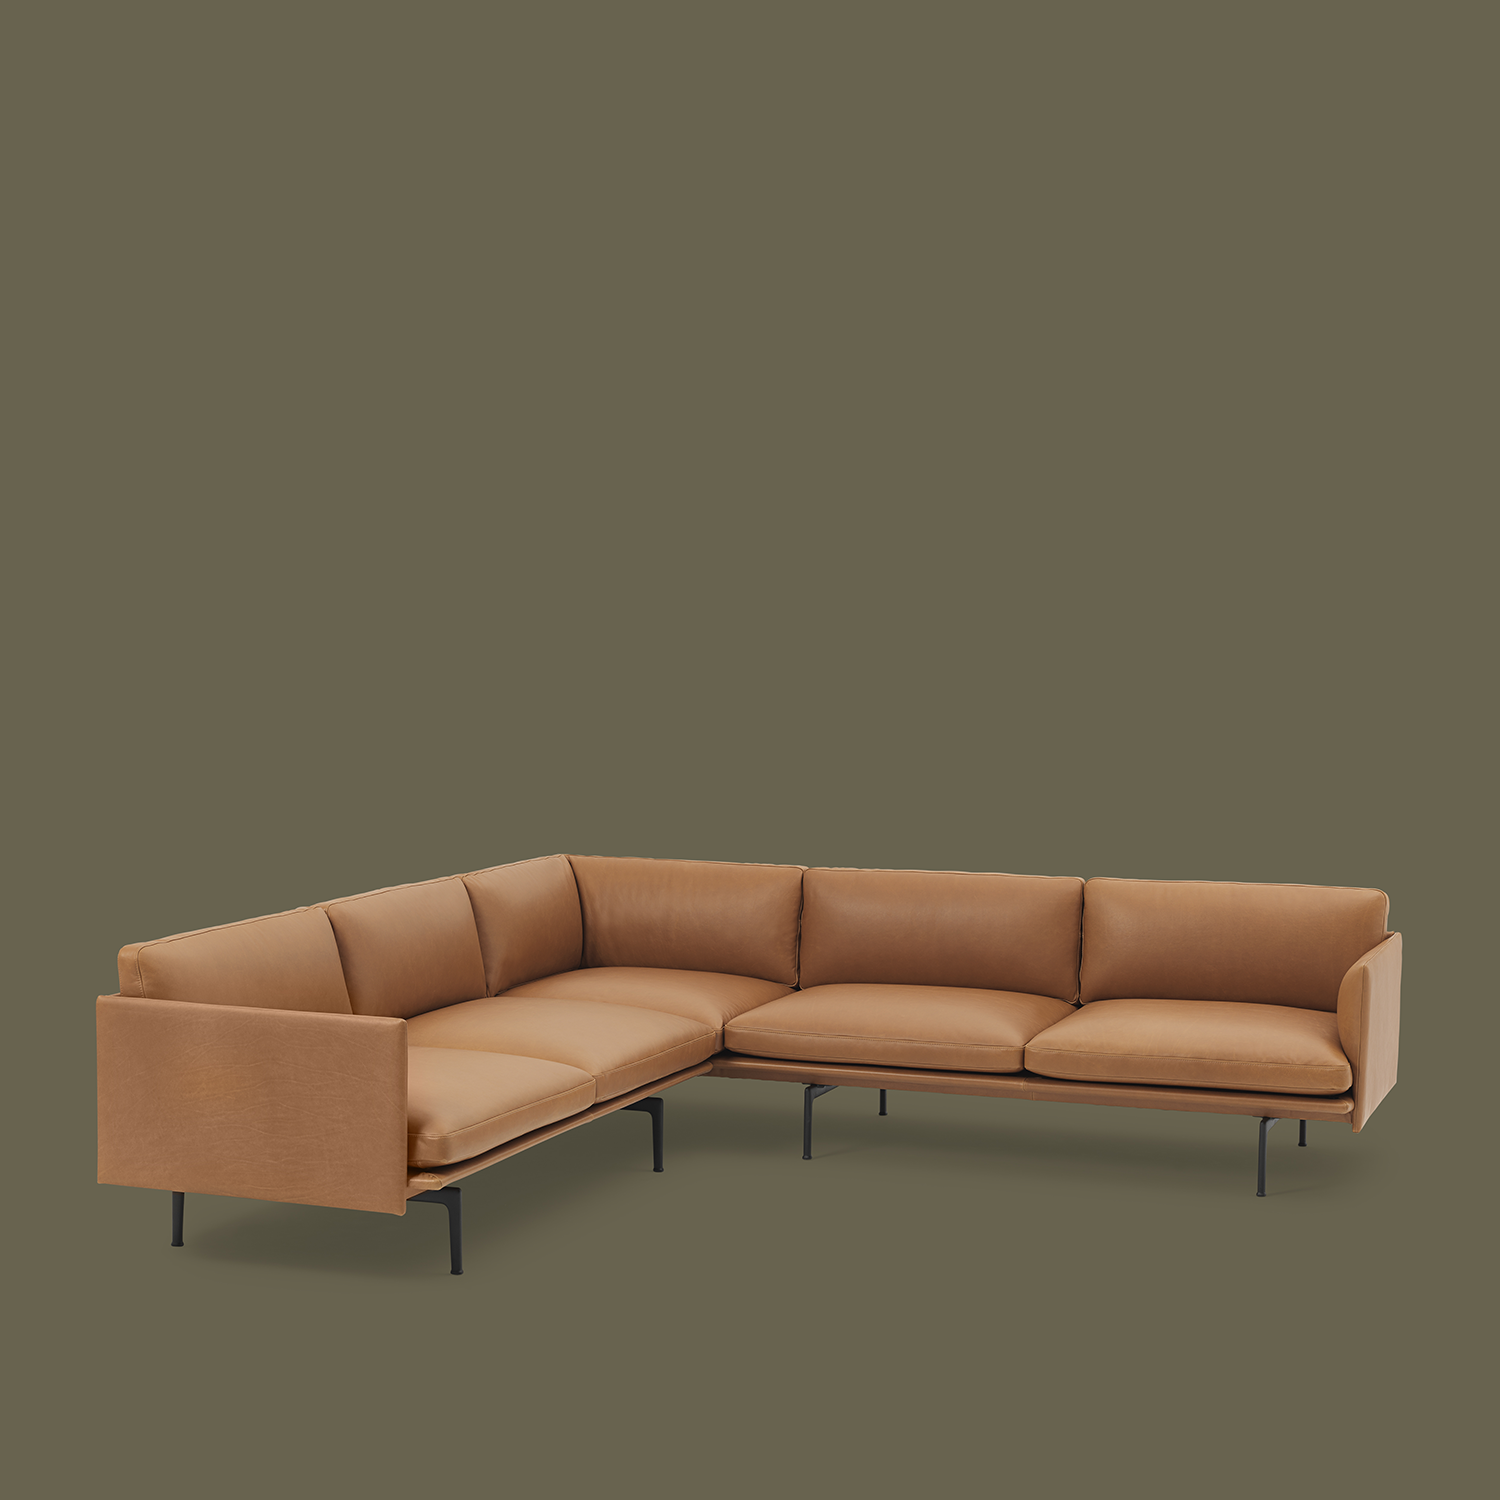 Timeless And Comfortable Corner Sofa Design Decor Inspiration From Muuto Embodying Refined And Elegant Design Is The Outline Corner Sofa An Angular Sofa With I 2020